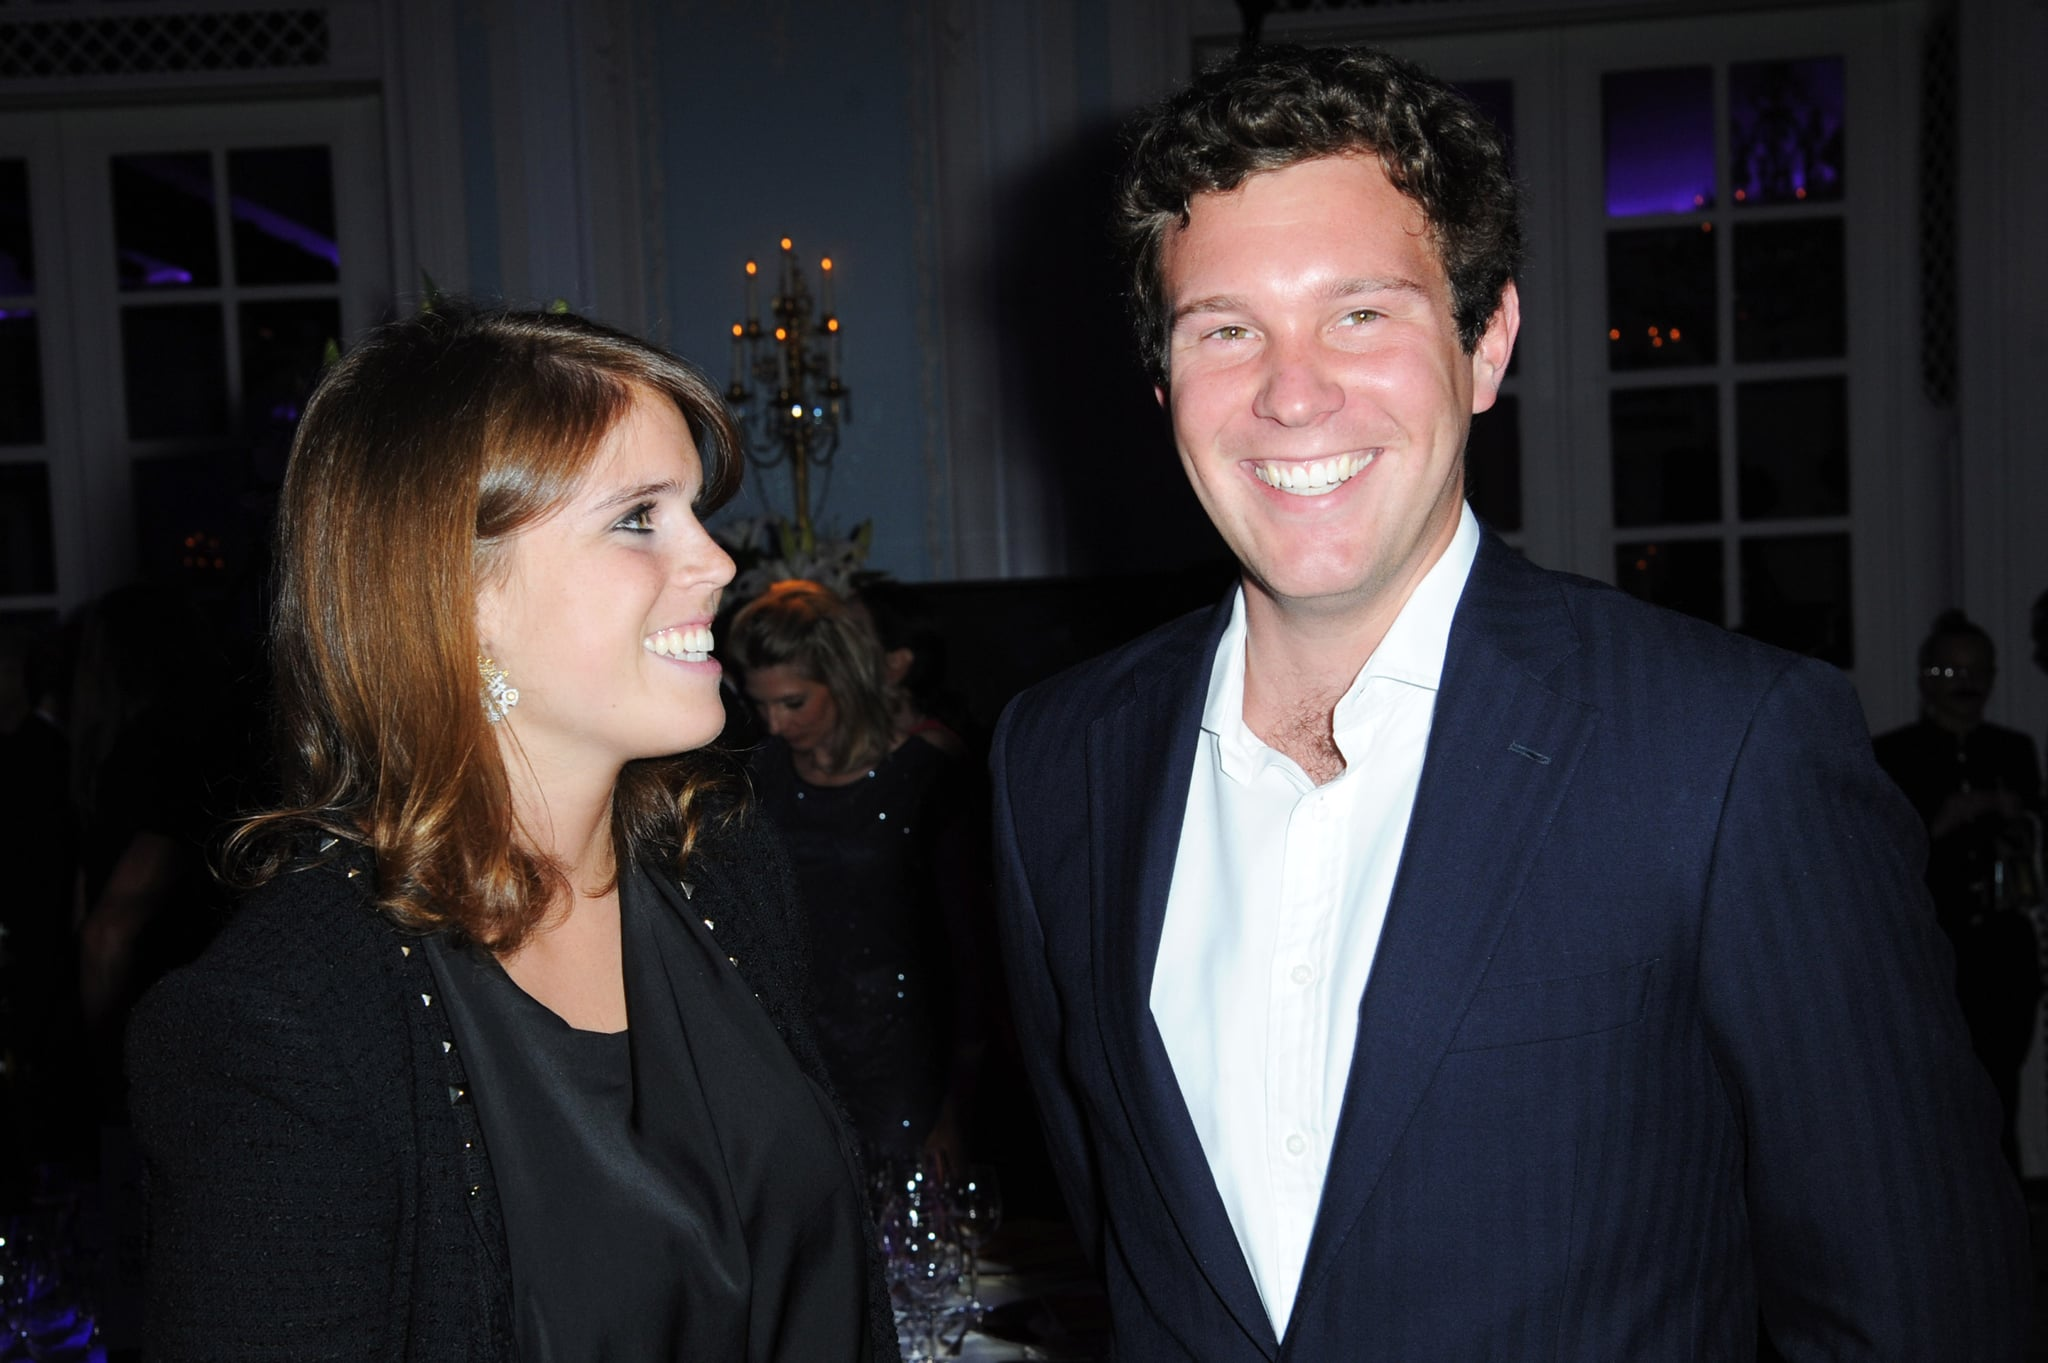 LONDON, ENGLAND - SEPTEMBER 03: R-L Jack Brooksbank and Princess Eugenie of York attend the second annual